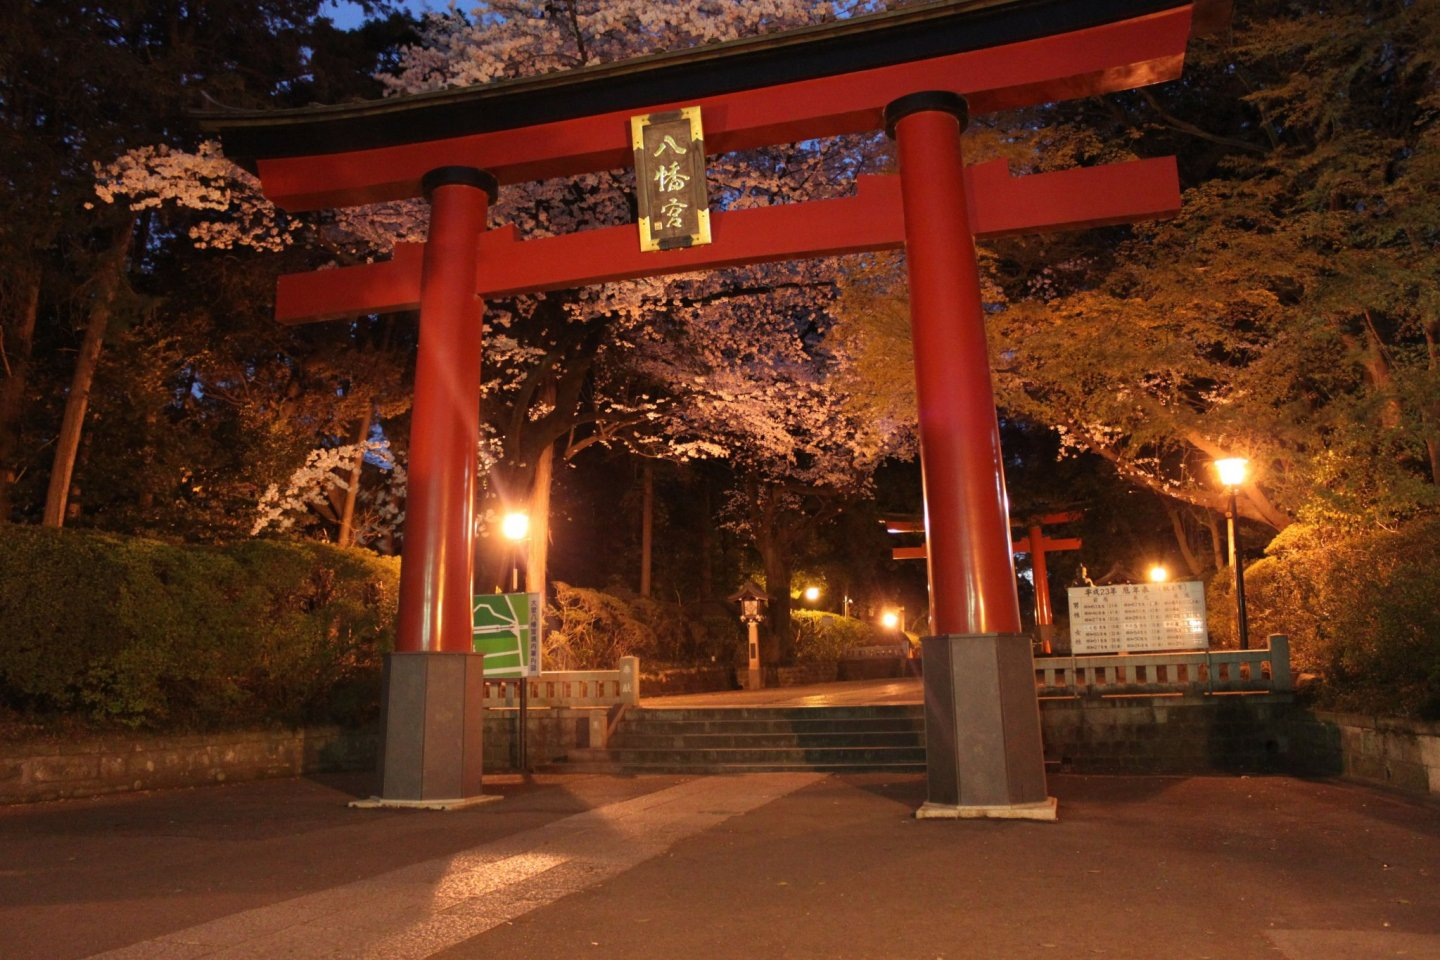 The torii gate of Omiya Hachimangu Shrine lit up at night